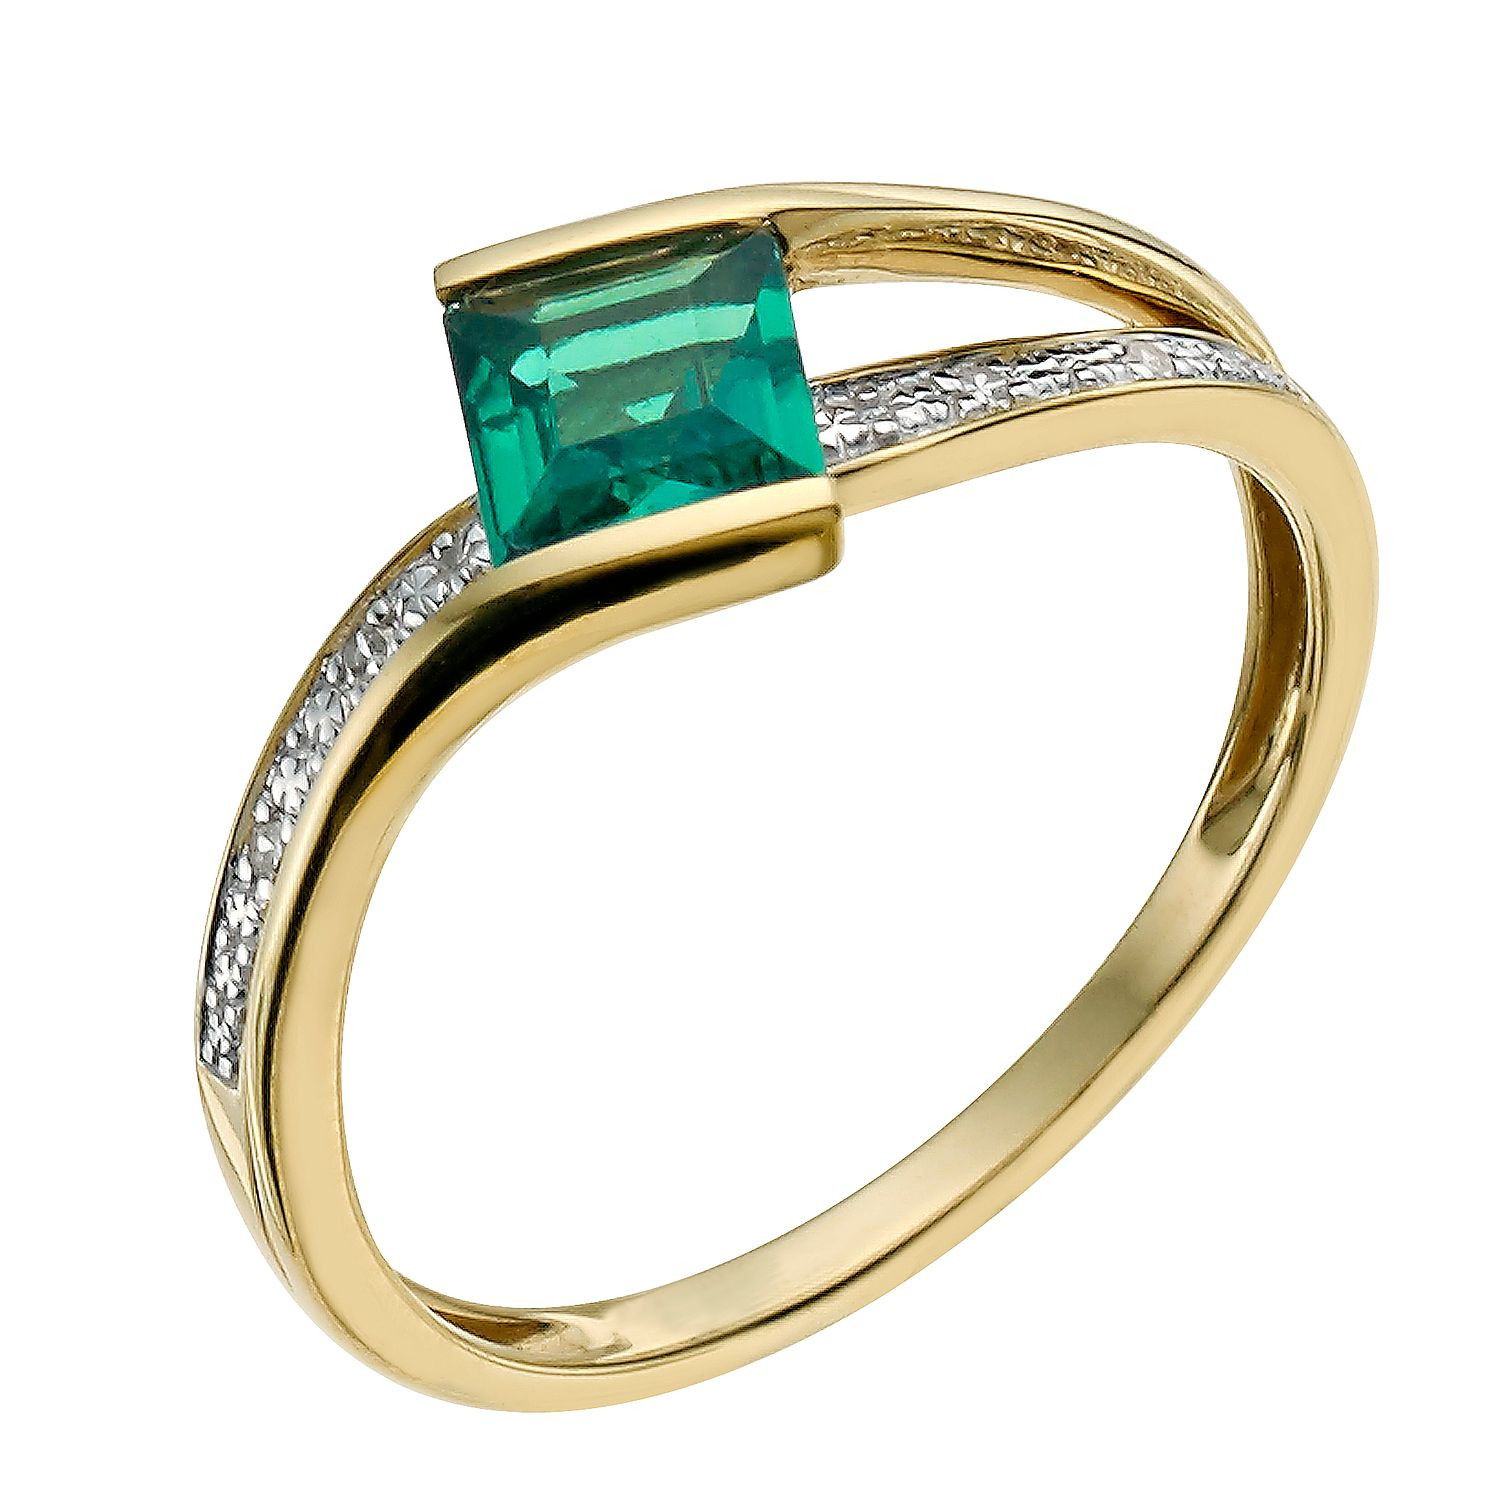 rings innovations diamond yellow and in emerald ring signature gold platinum set collections cp artistic